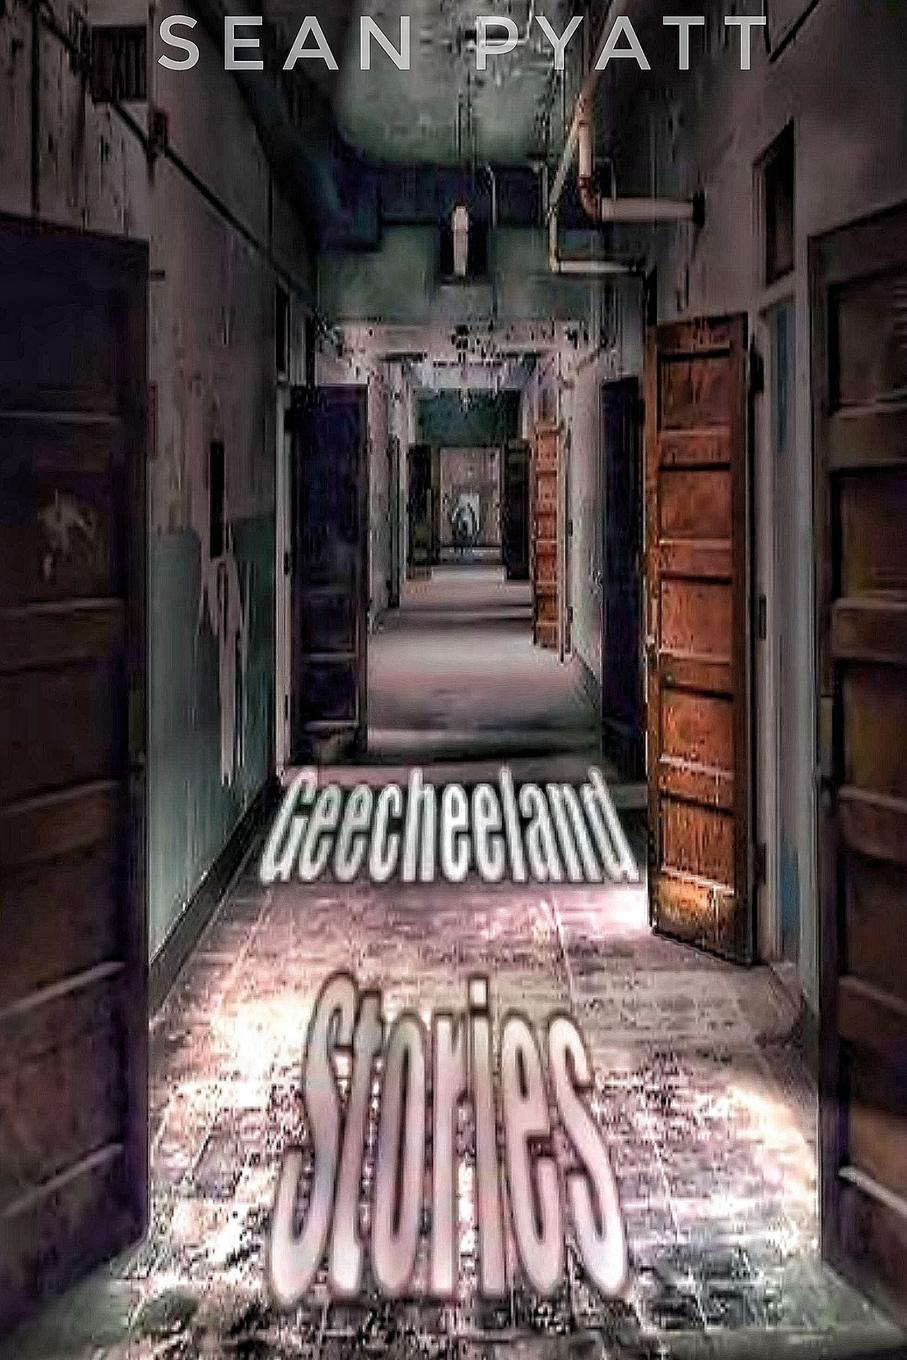 Sean Pyatt Geecheeland Stories. Episode 1 chronicles of kull volume 1 a king comes riding and other stories